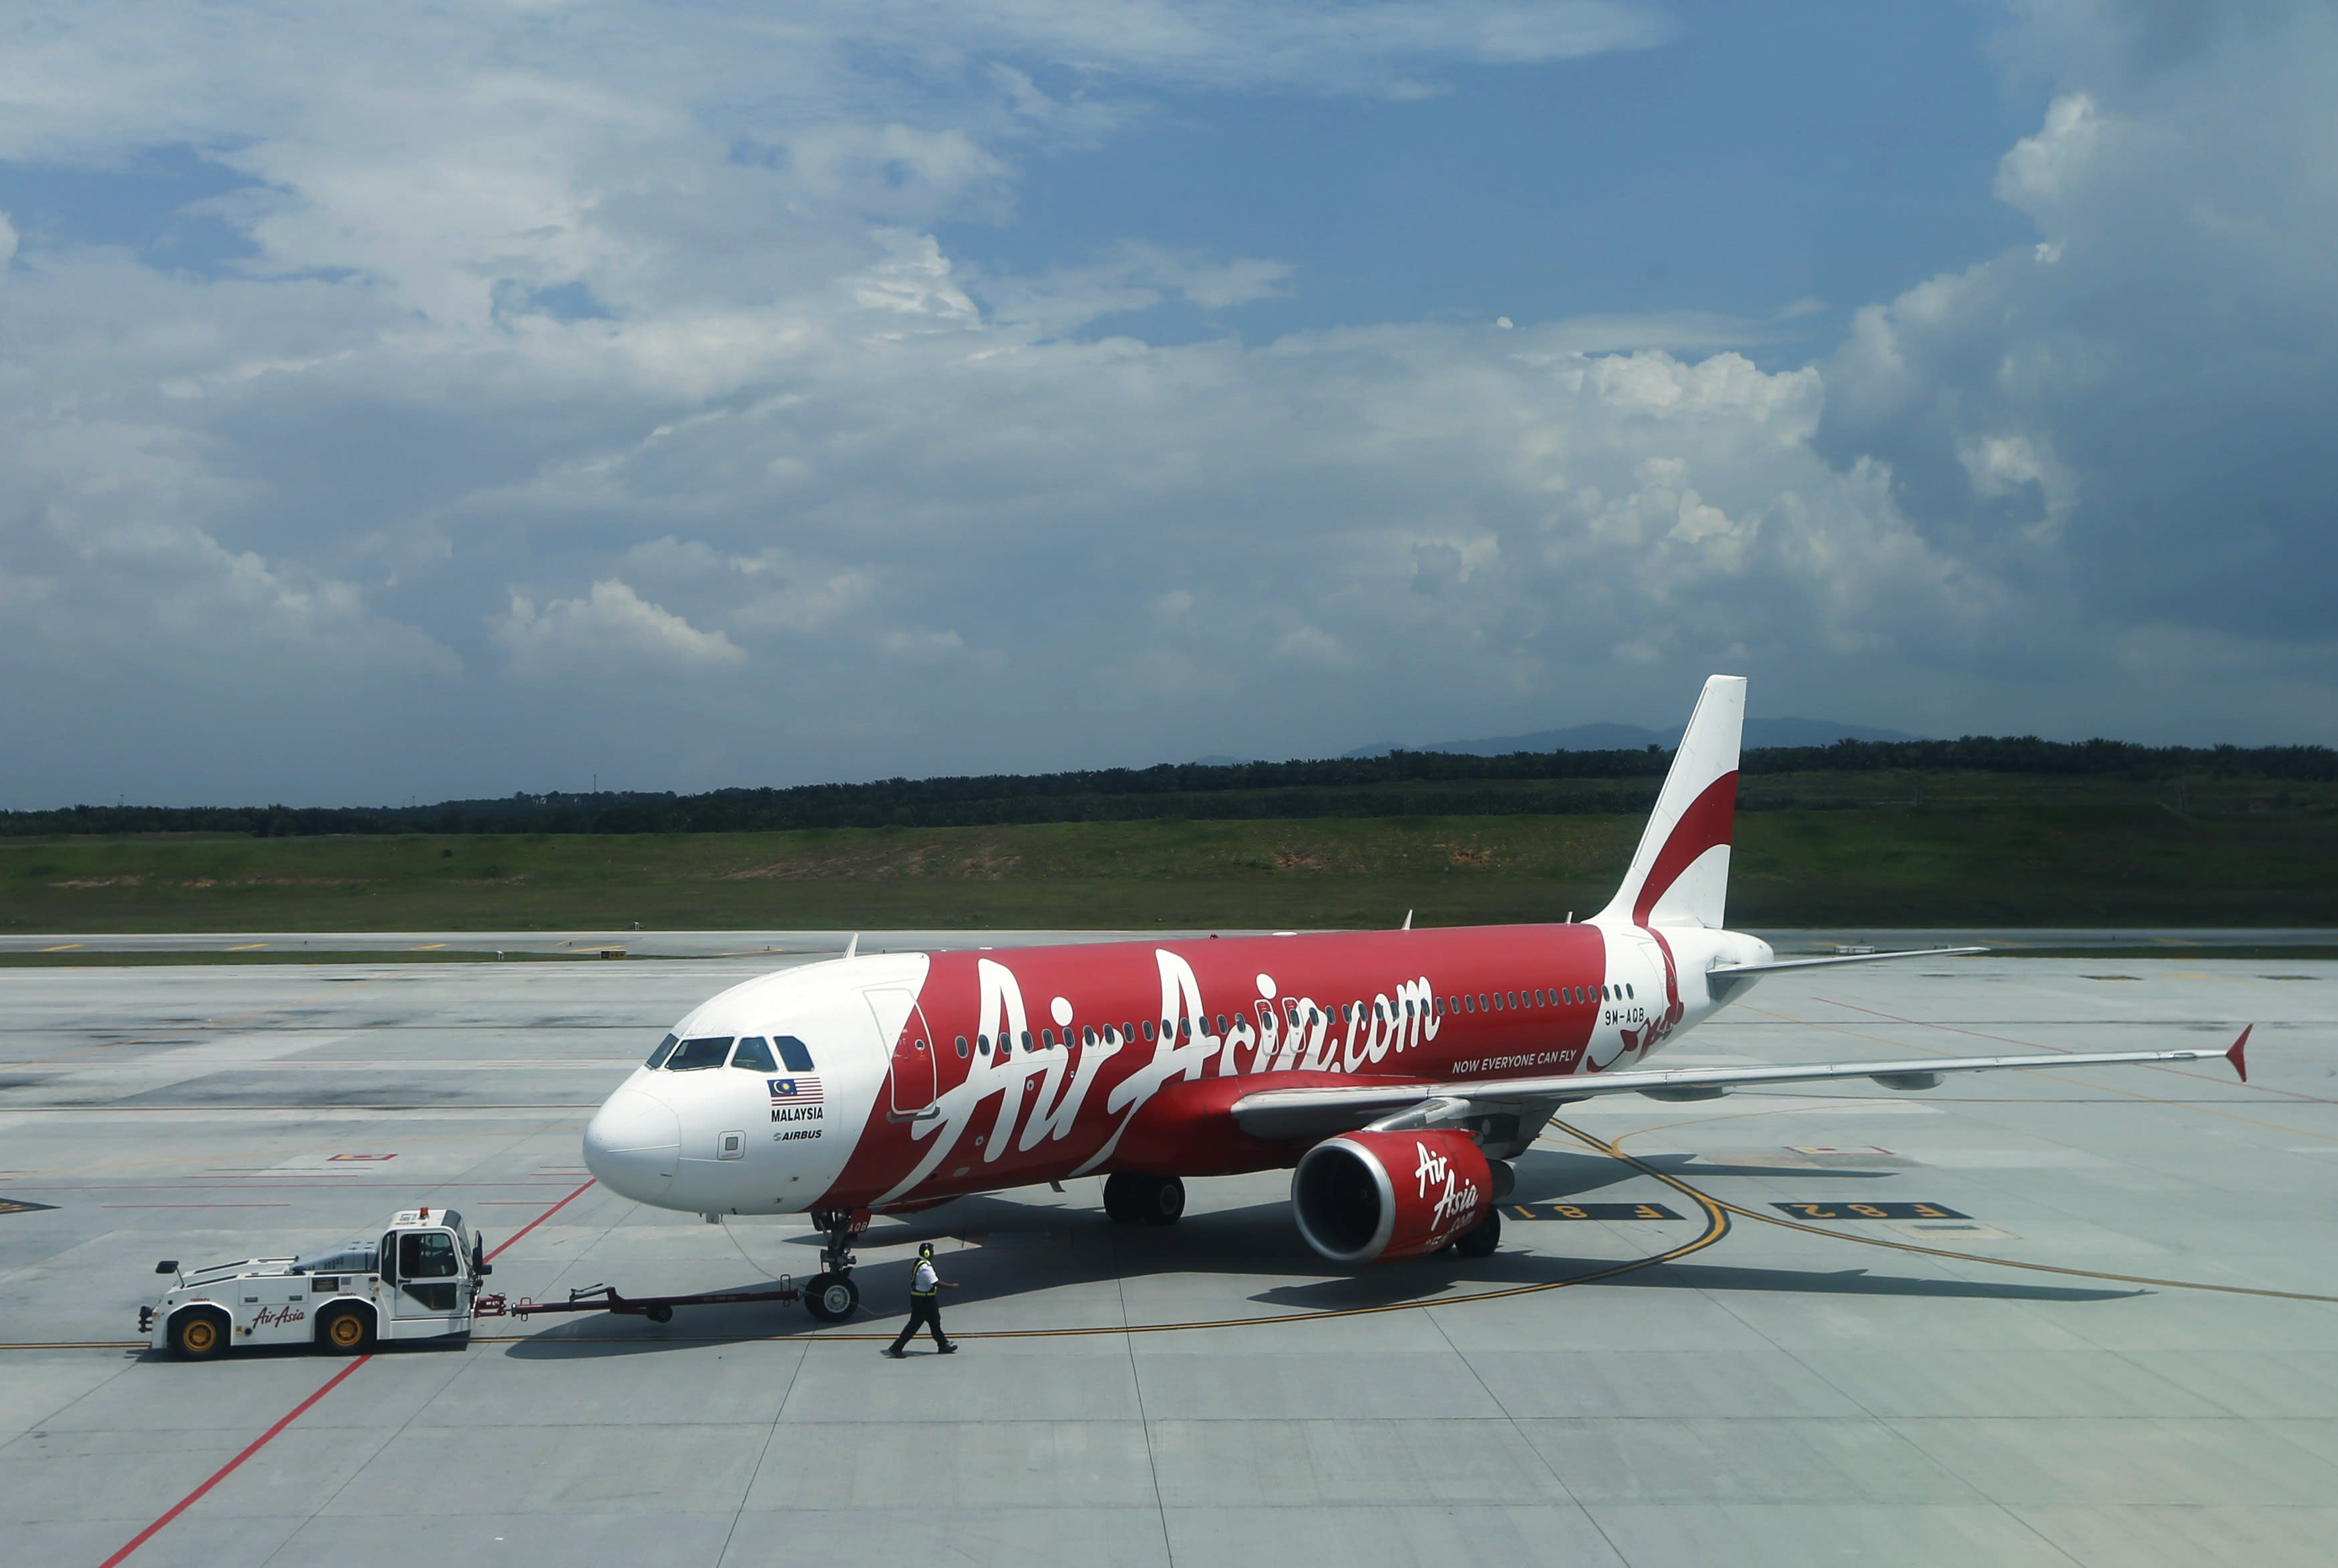 Search for missing AirAsia jet #QZ8501 bound for Singapore from Indonesia suspended